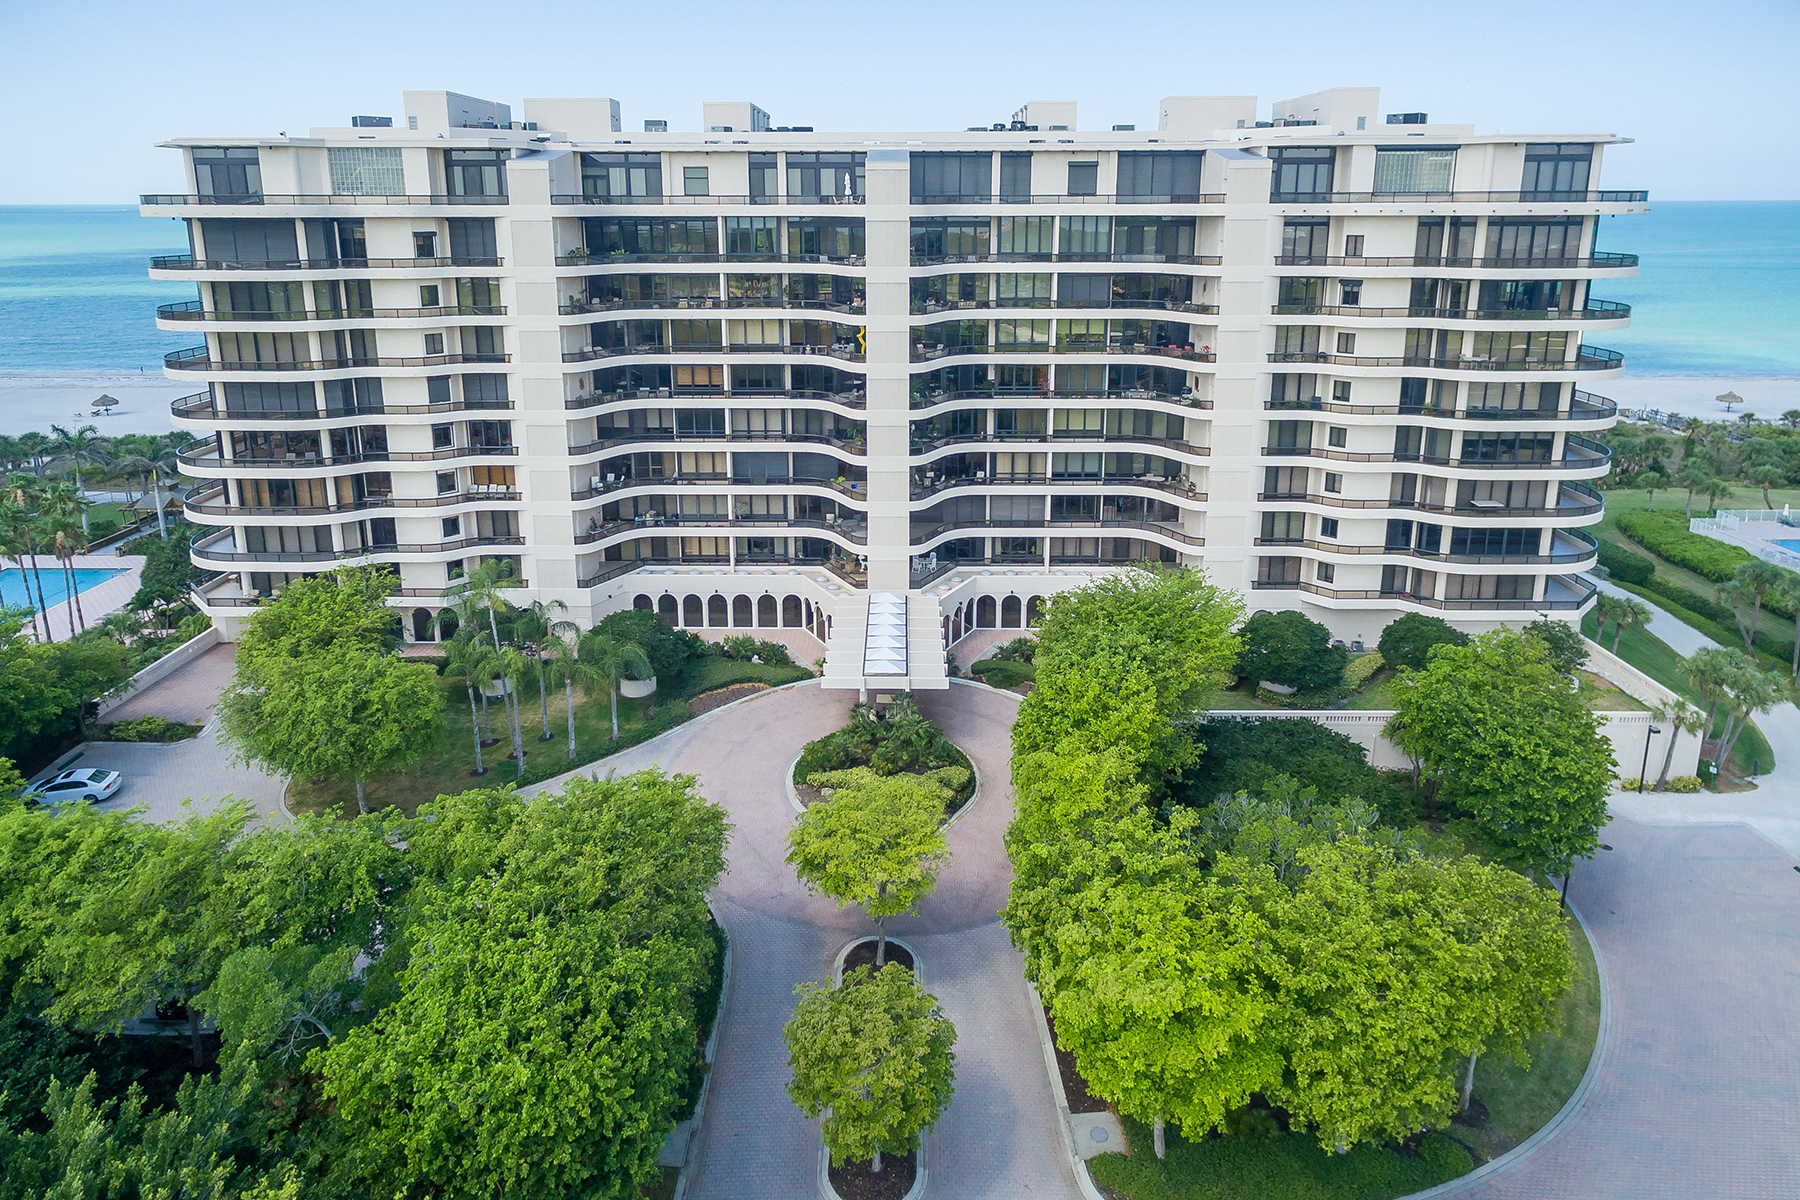 Condominium for Sale at L'AMBIANCE 435 L Ambiance Dr K206, Longboat Key, Florida 34228 United States